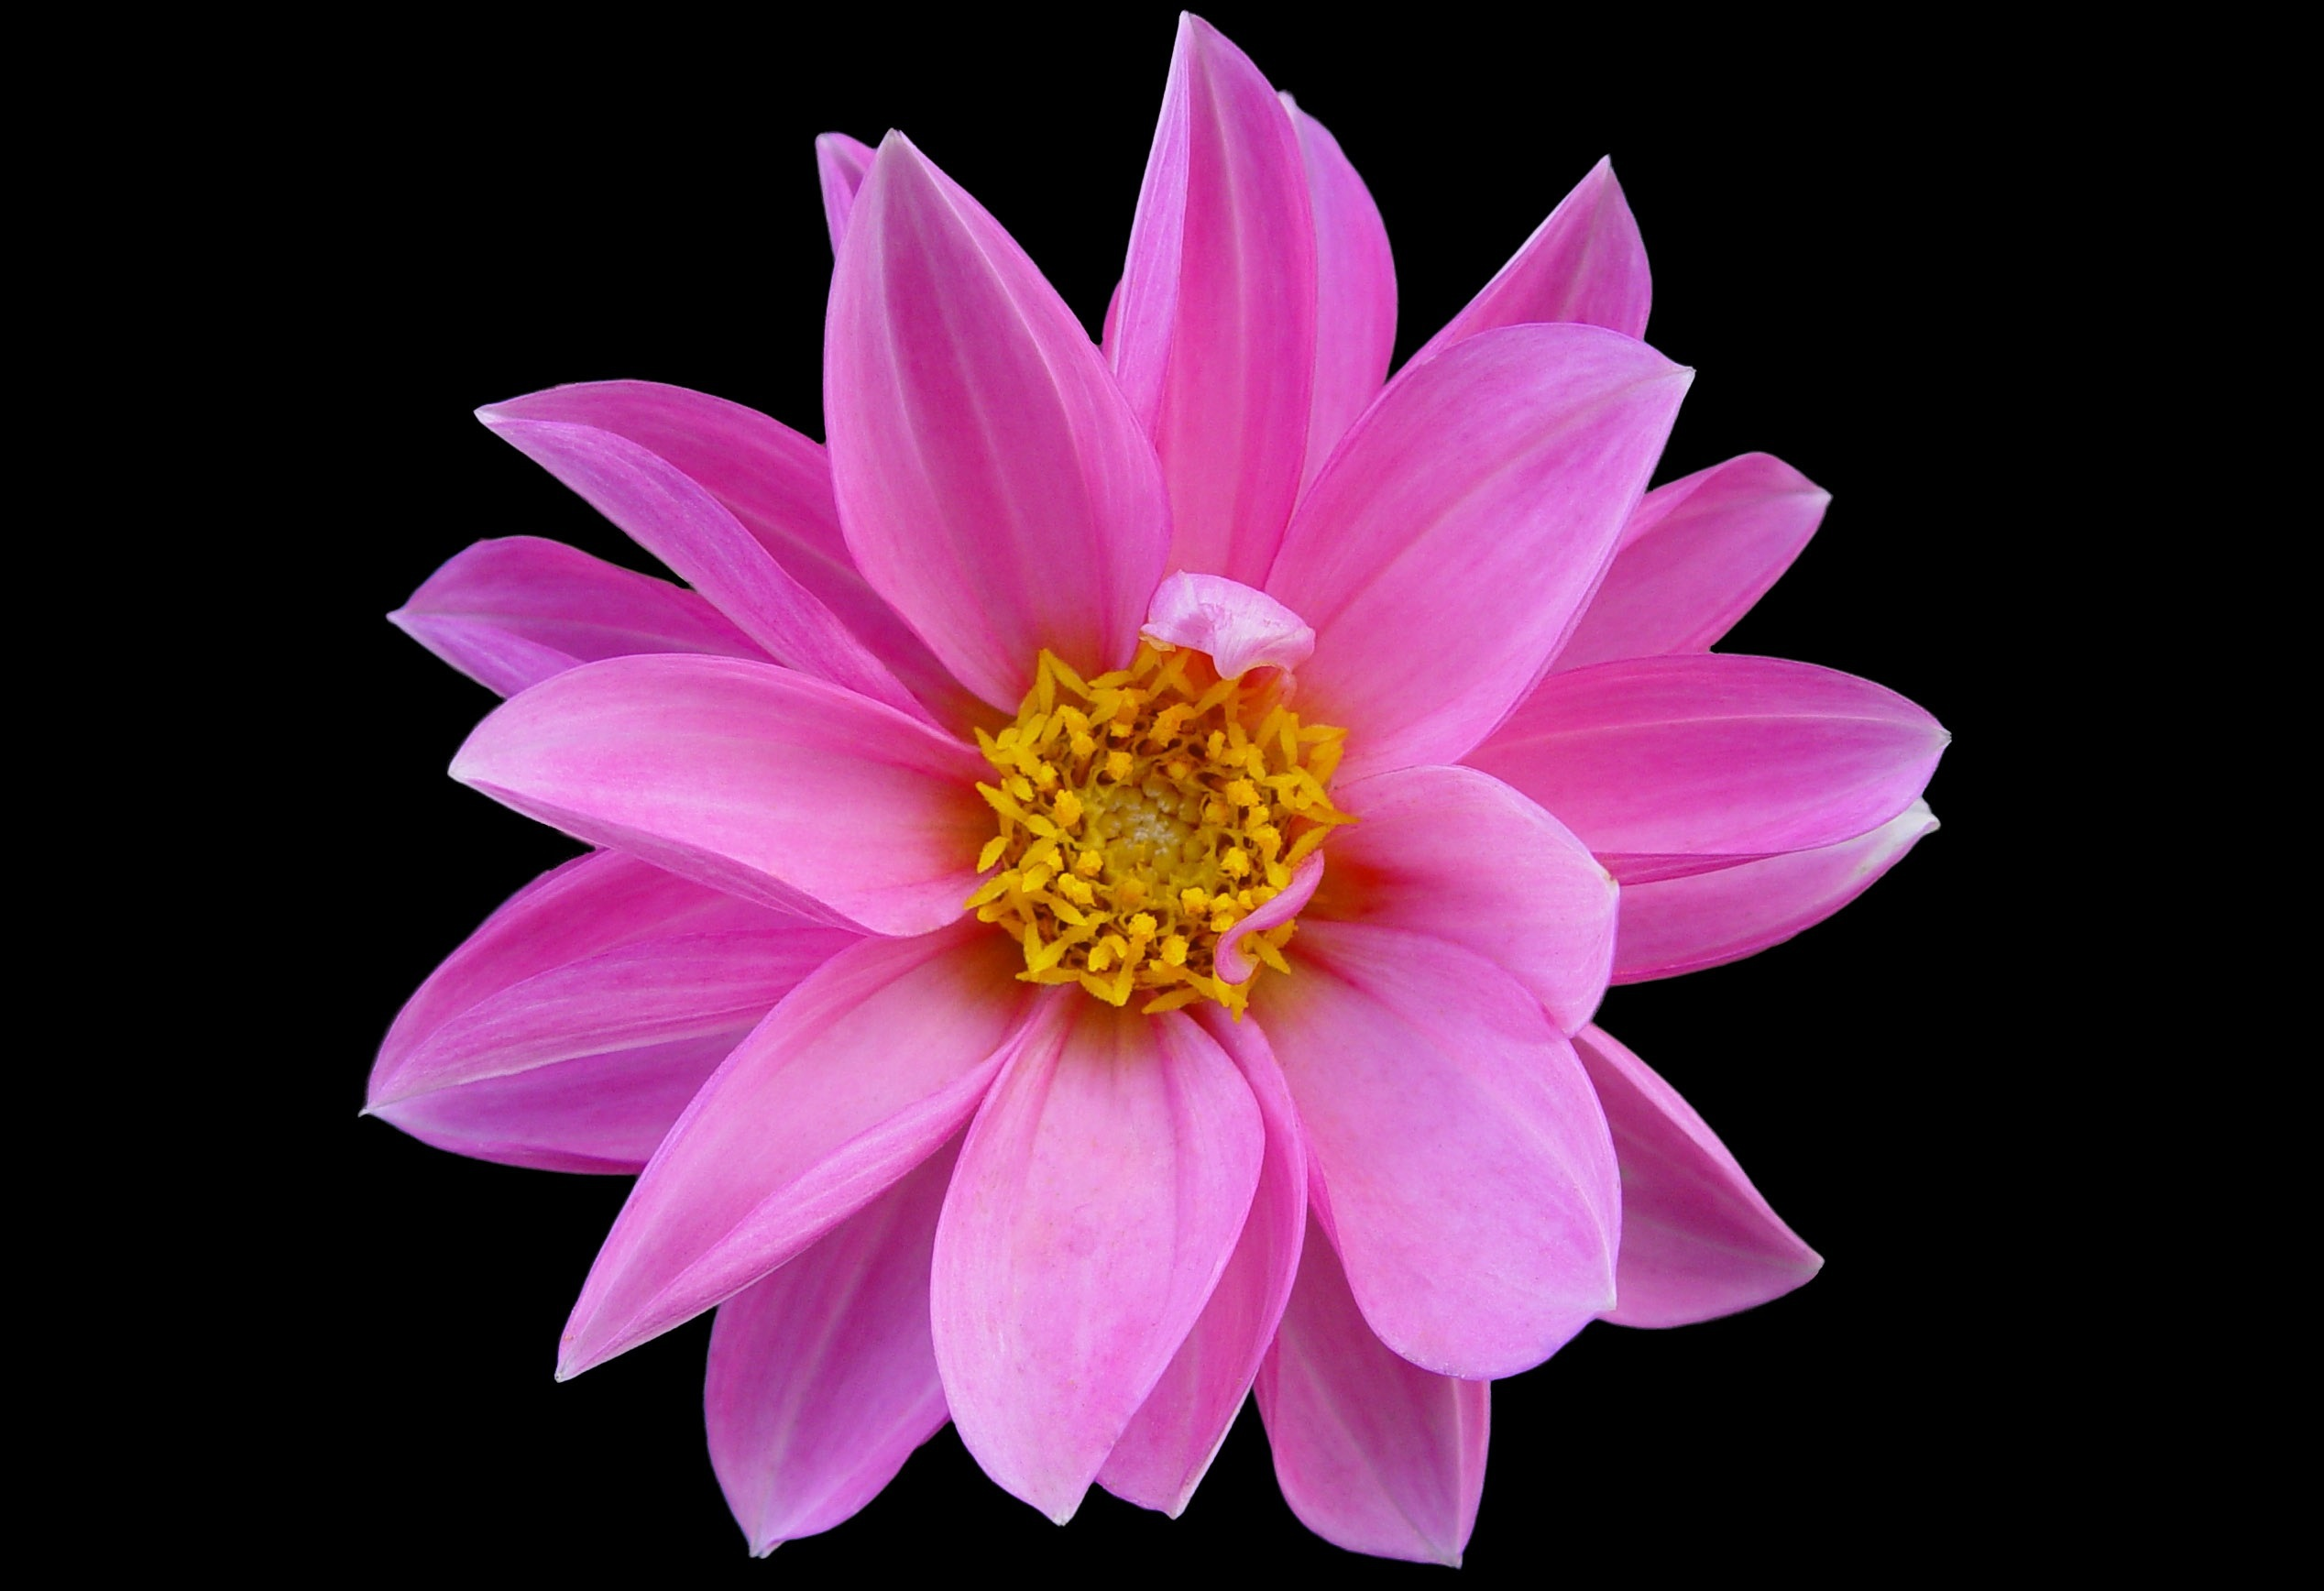 Pictures Of Pink Flower